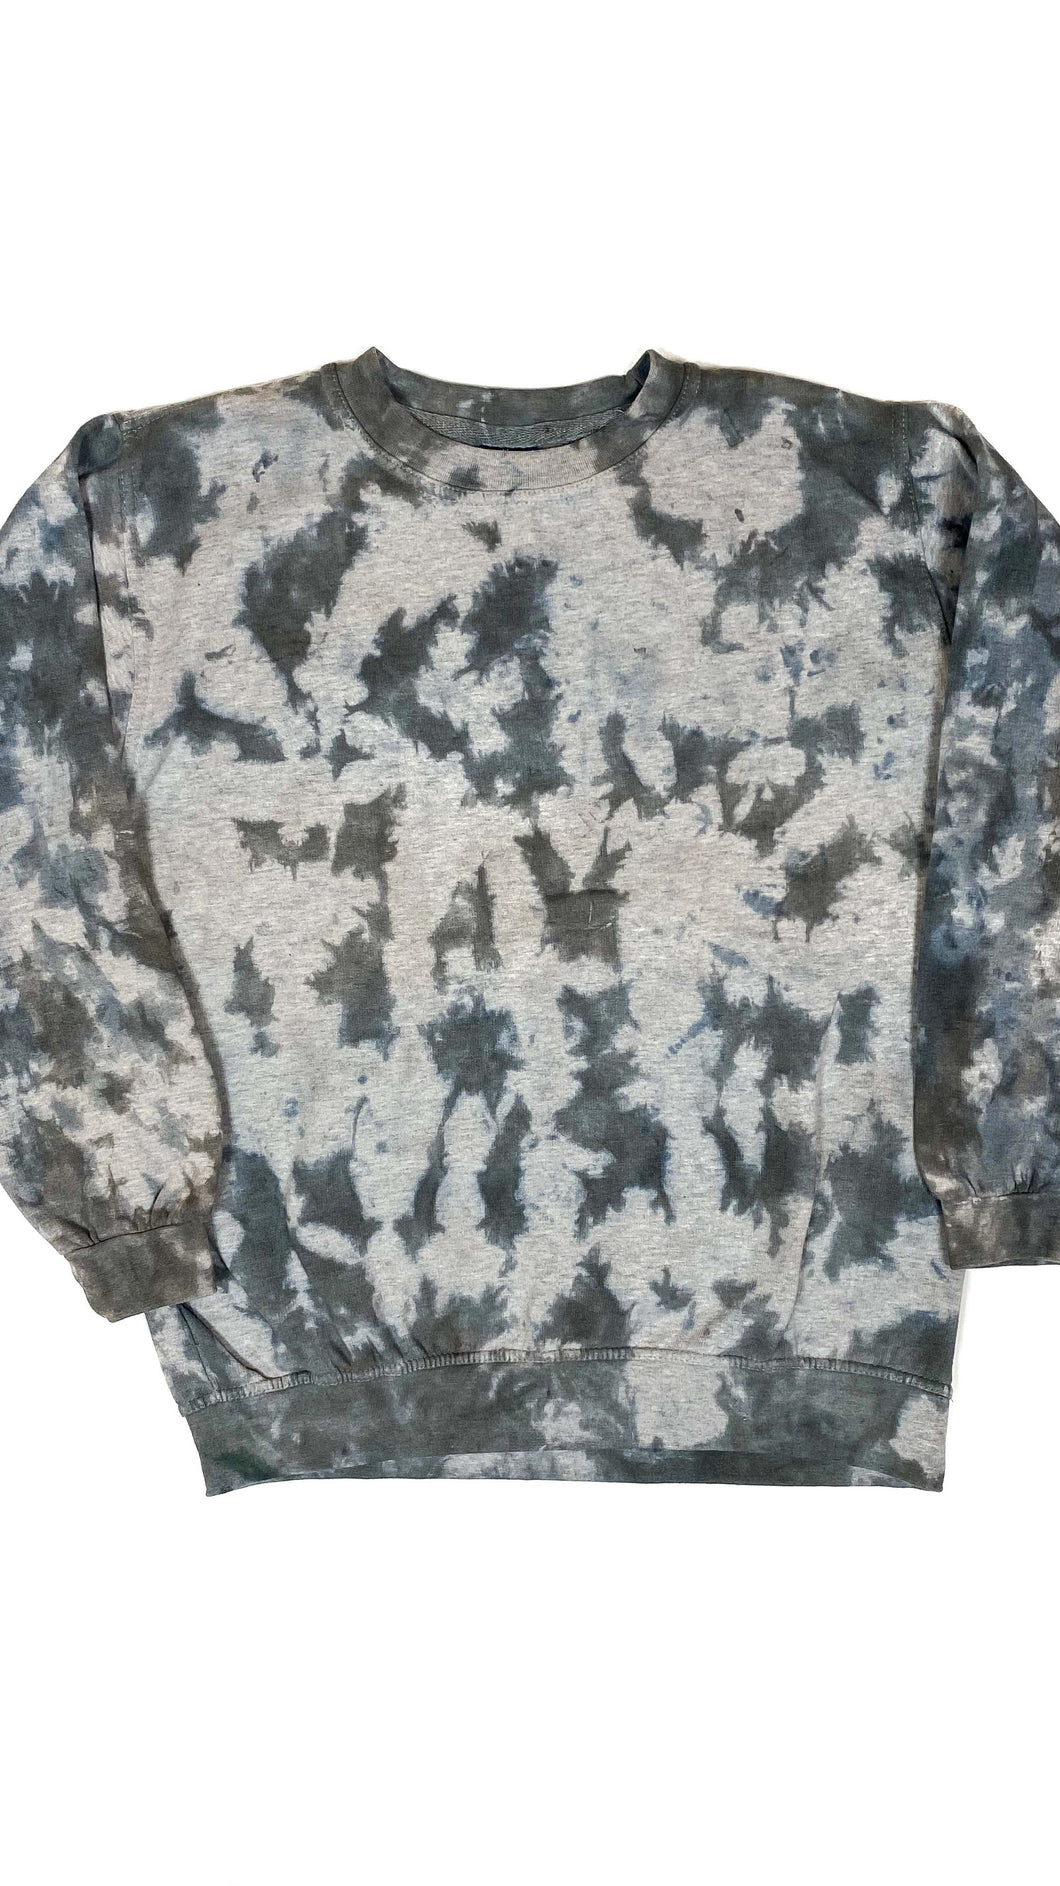 Plain Tie Dye Sweater Grey and Black